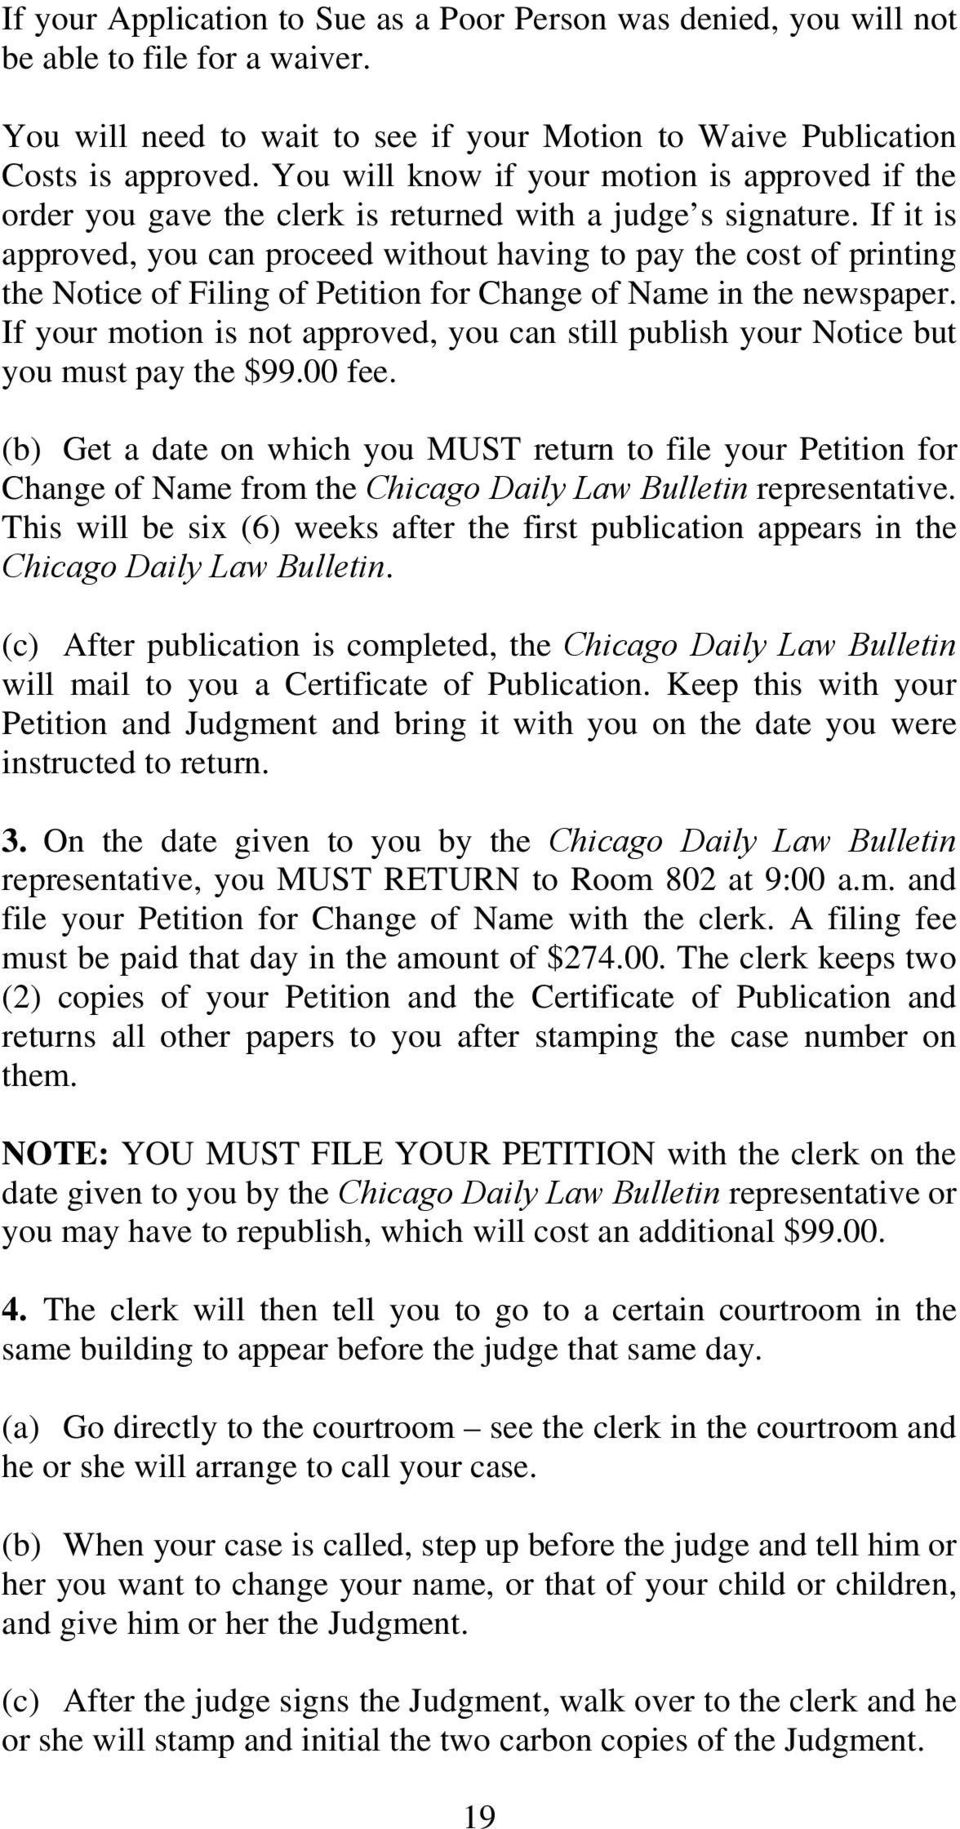 If it is approved, you can proceed without having to pay the cost of printing the Notice of Filing of Petition for Change of Name in the newspaper.